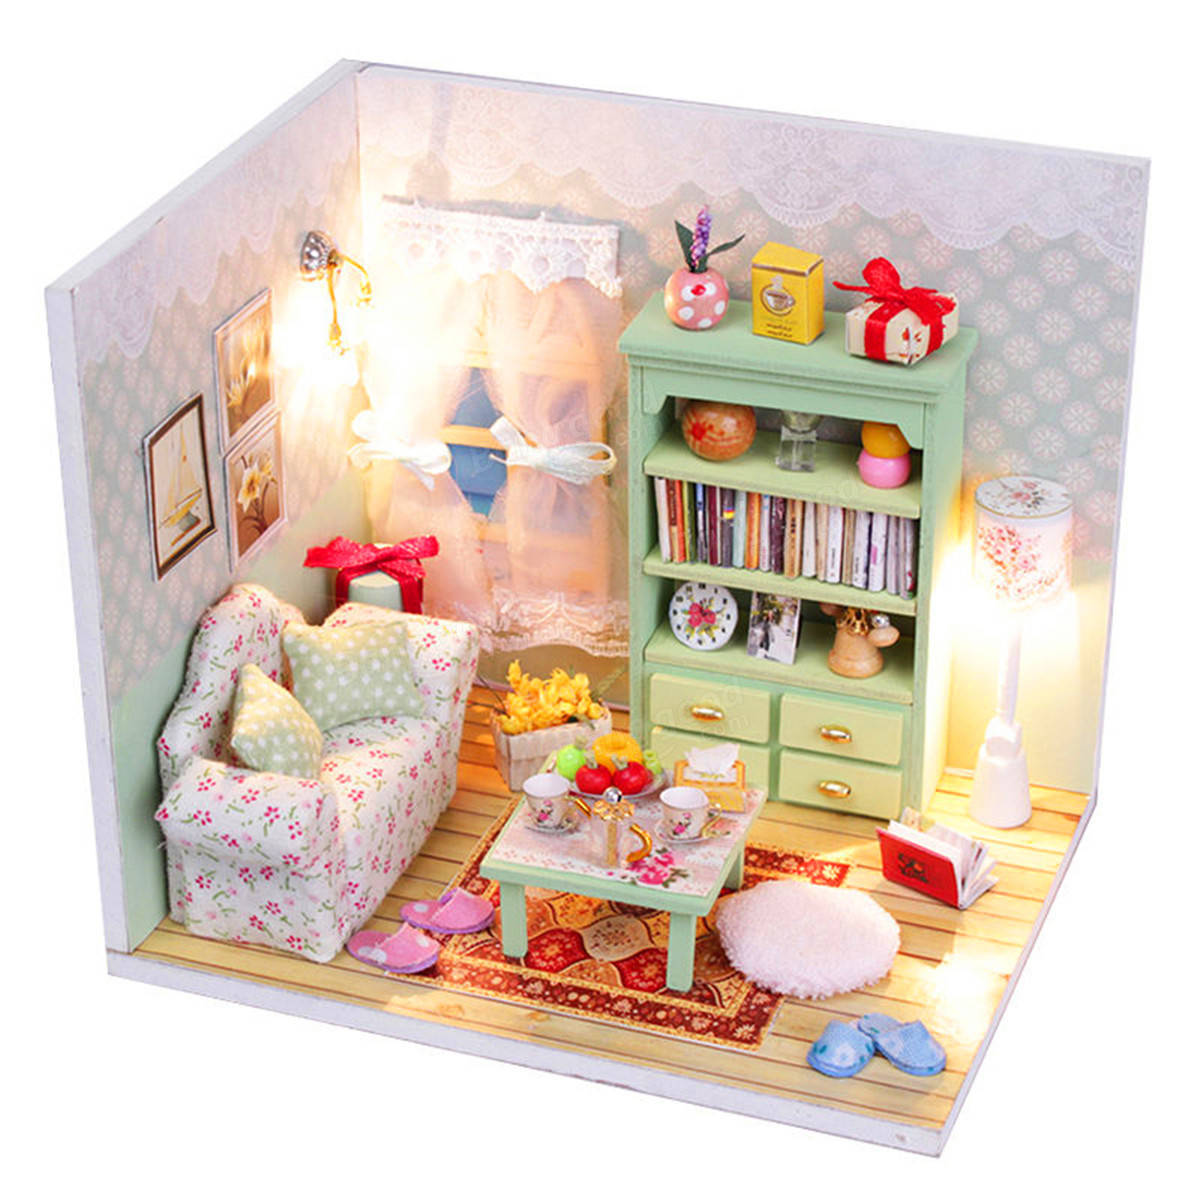 Diy Furniture Room Mini Box Dollhouse Doll House Miniature: Hoomeda DIY Dream House Wood Dollhouse Miniature With LED